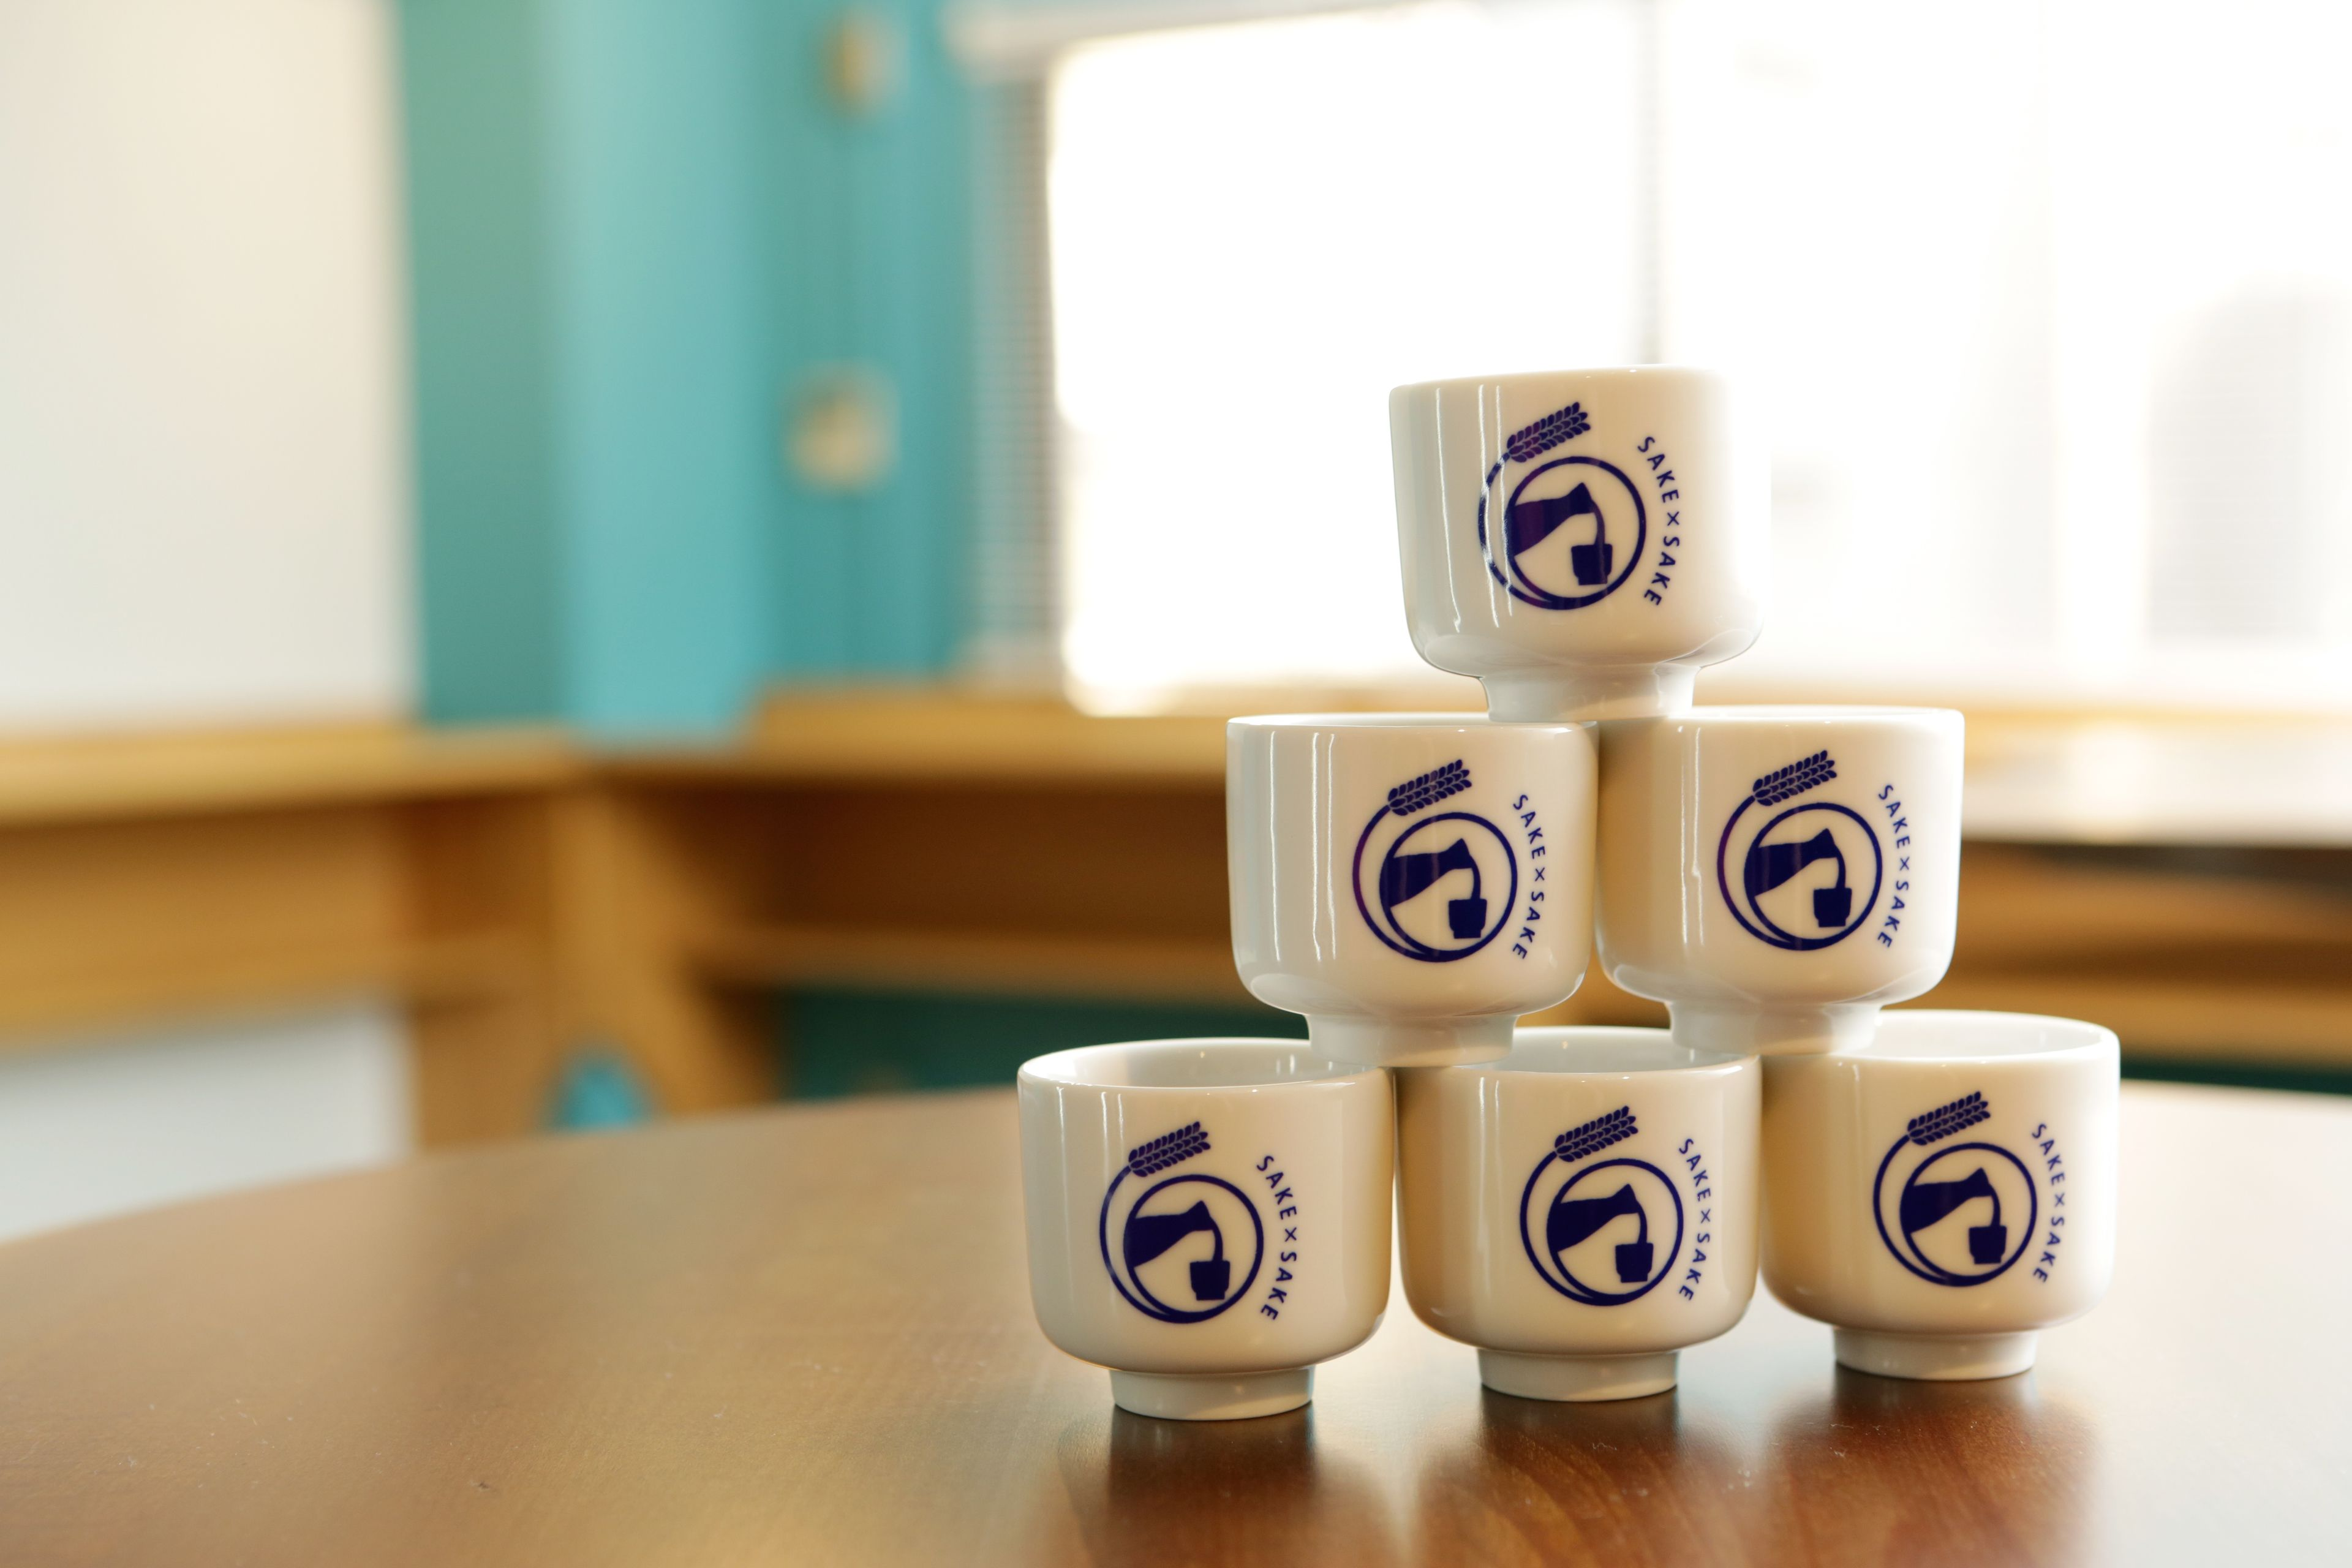 Six sake cups stacked in a pyramid